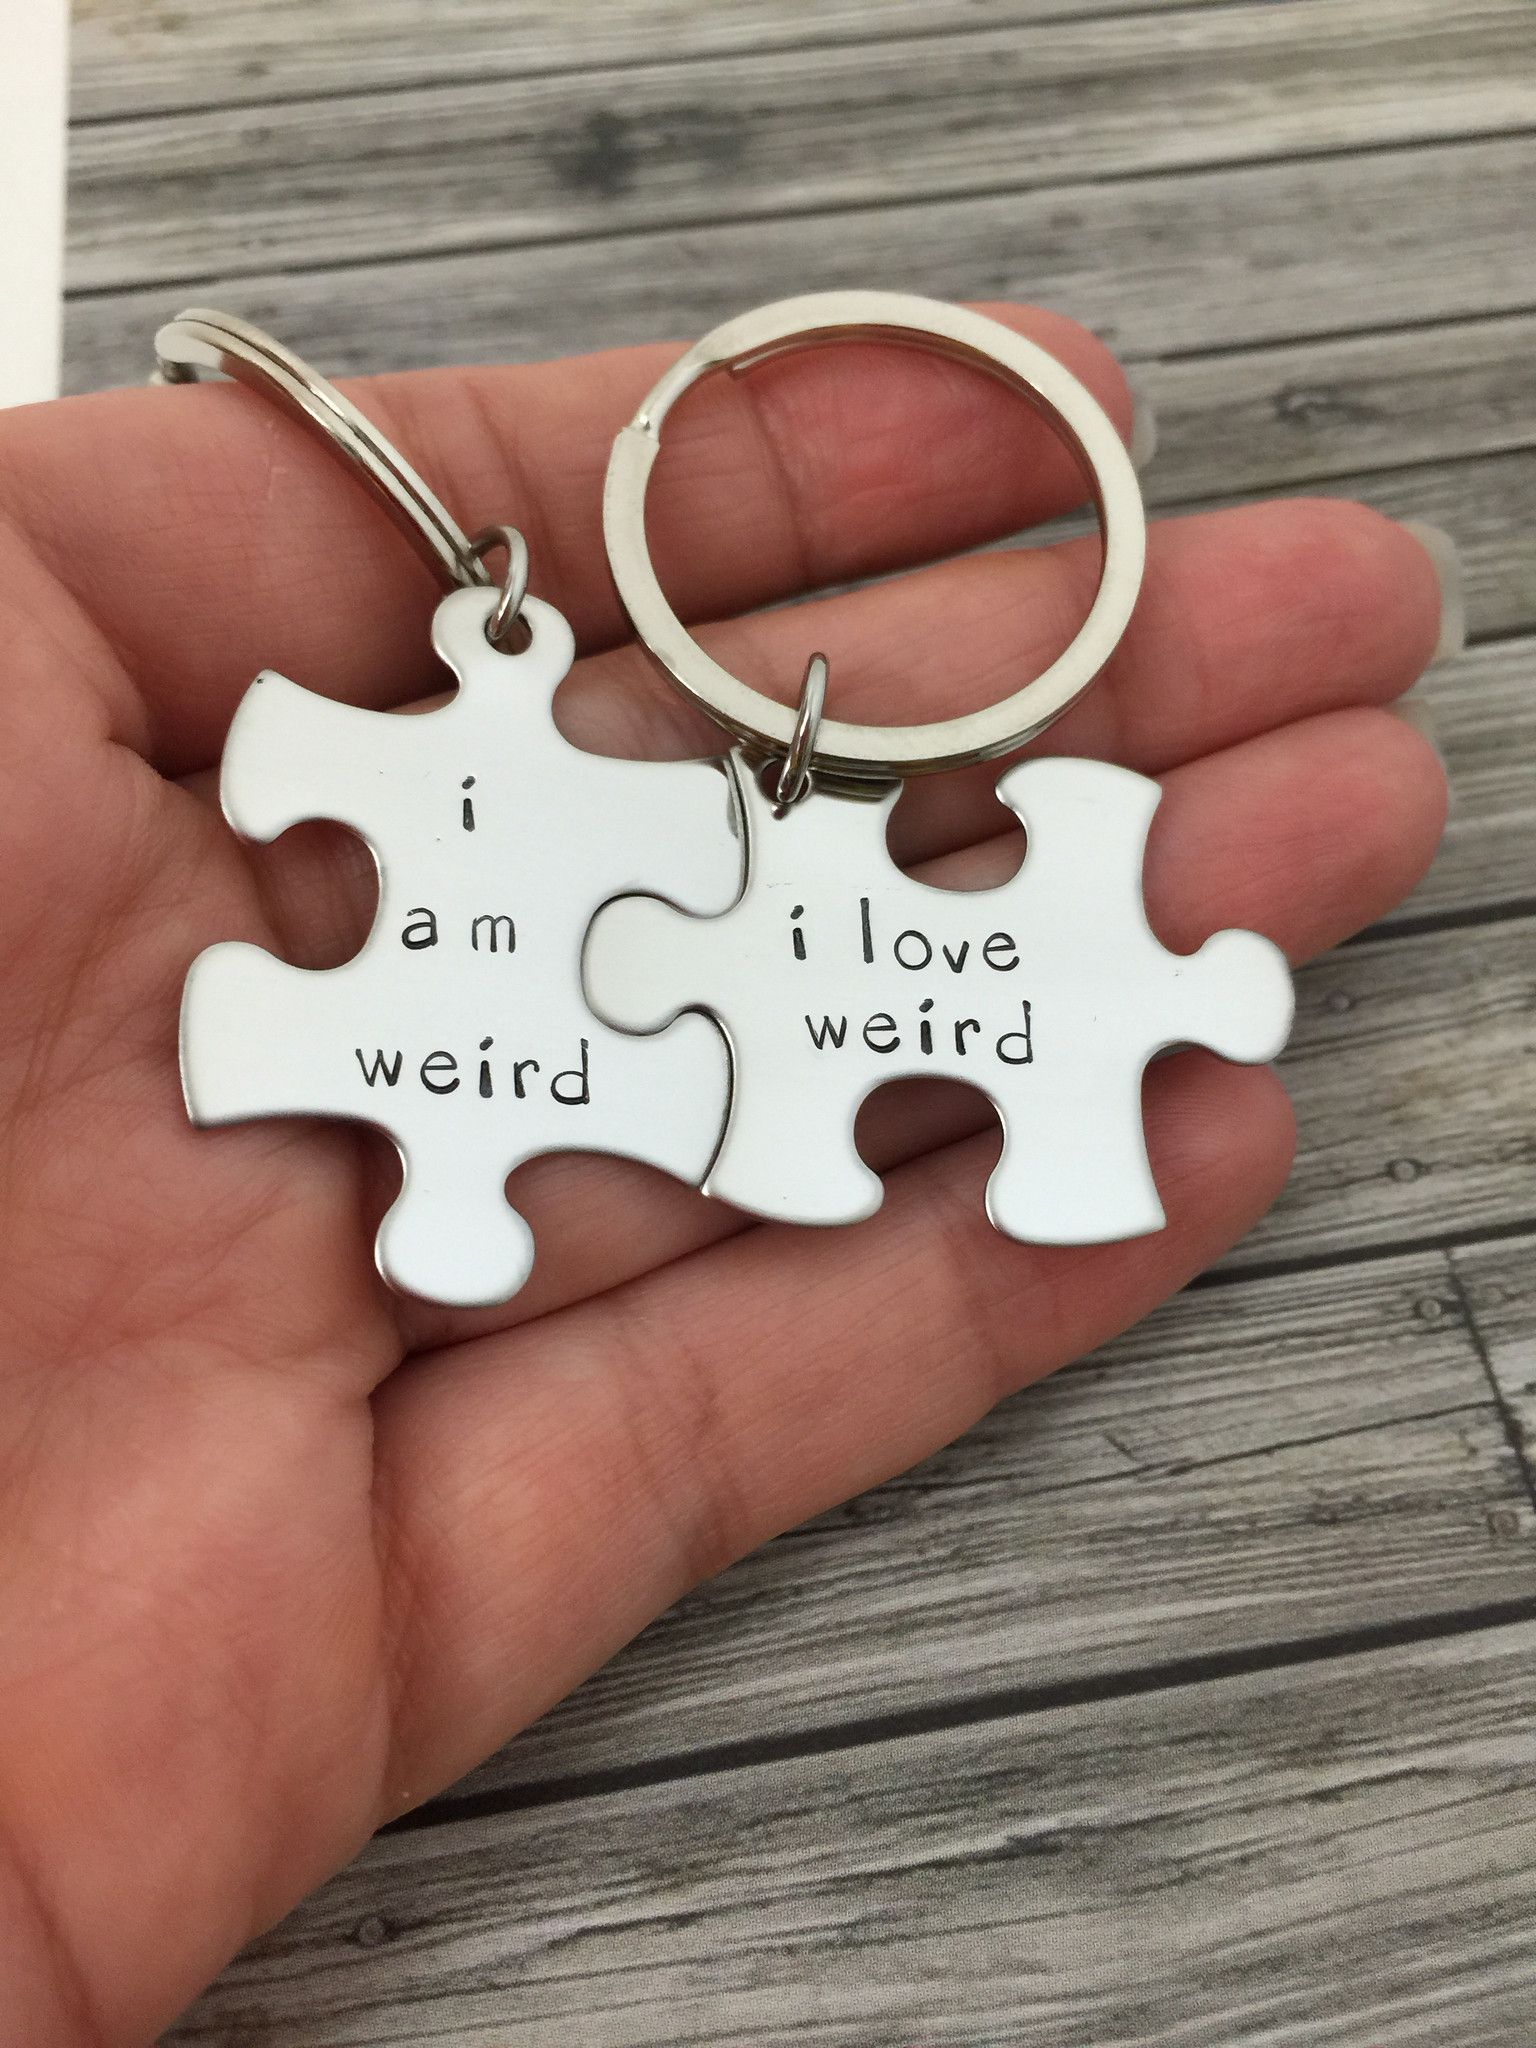 I am weird i love weird couples keychains couples gift ideas i am weird i love weird couples keychains couples gift ideas puzzle piece negle Choice Image